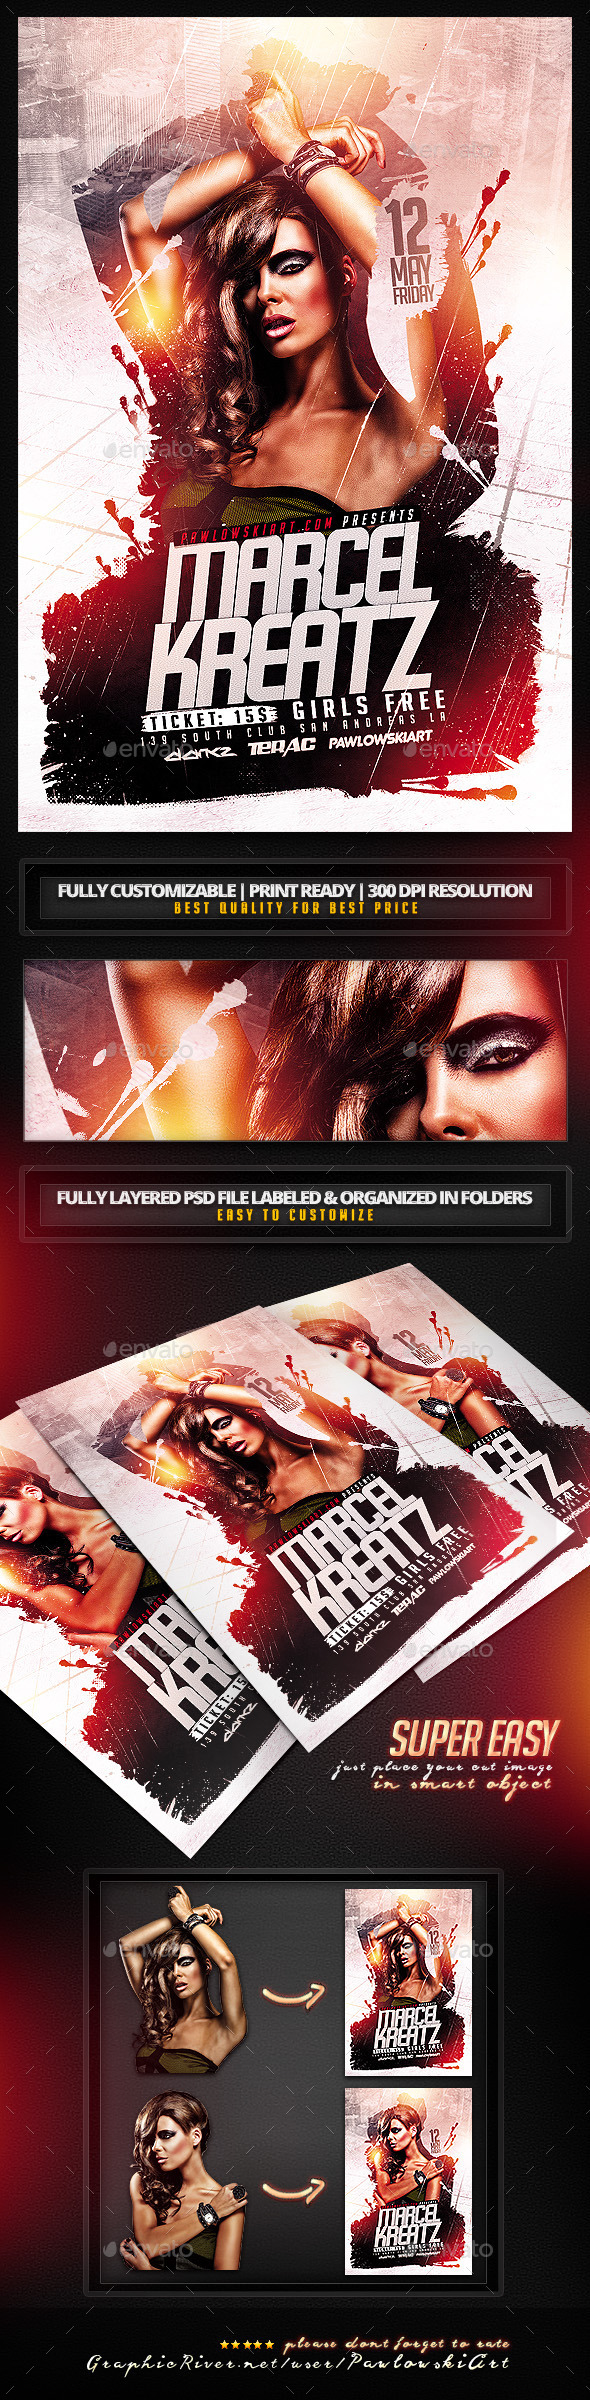 GraphicRiver Electro House DJ v2 Flyer PSD Template 11279130